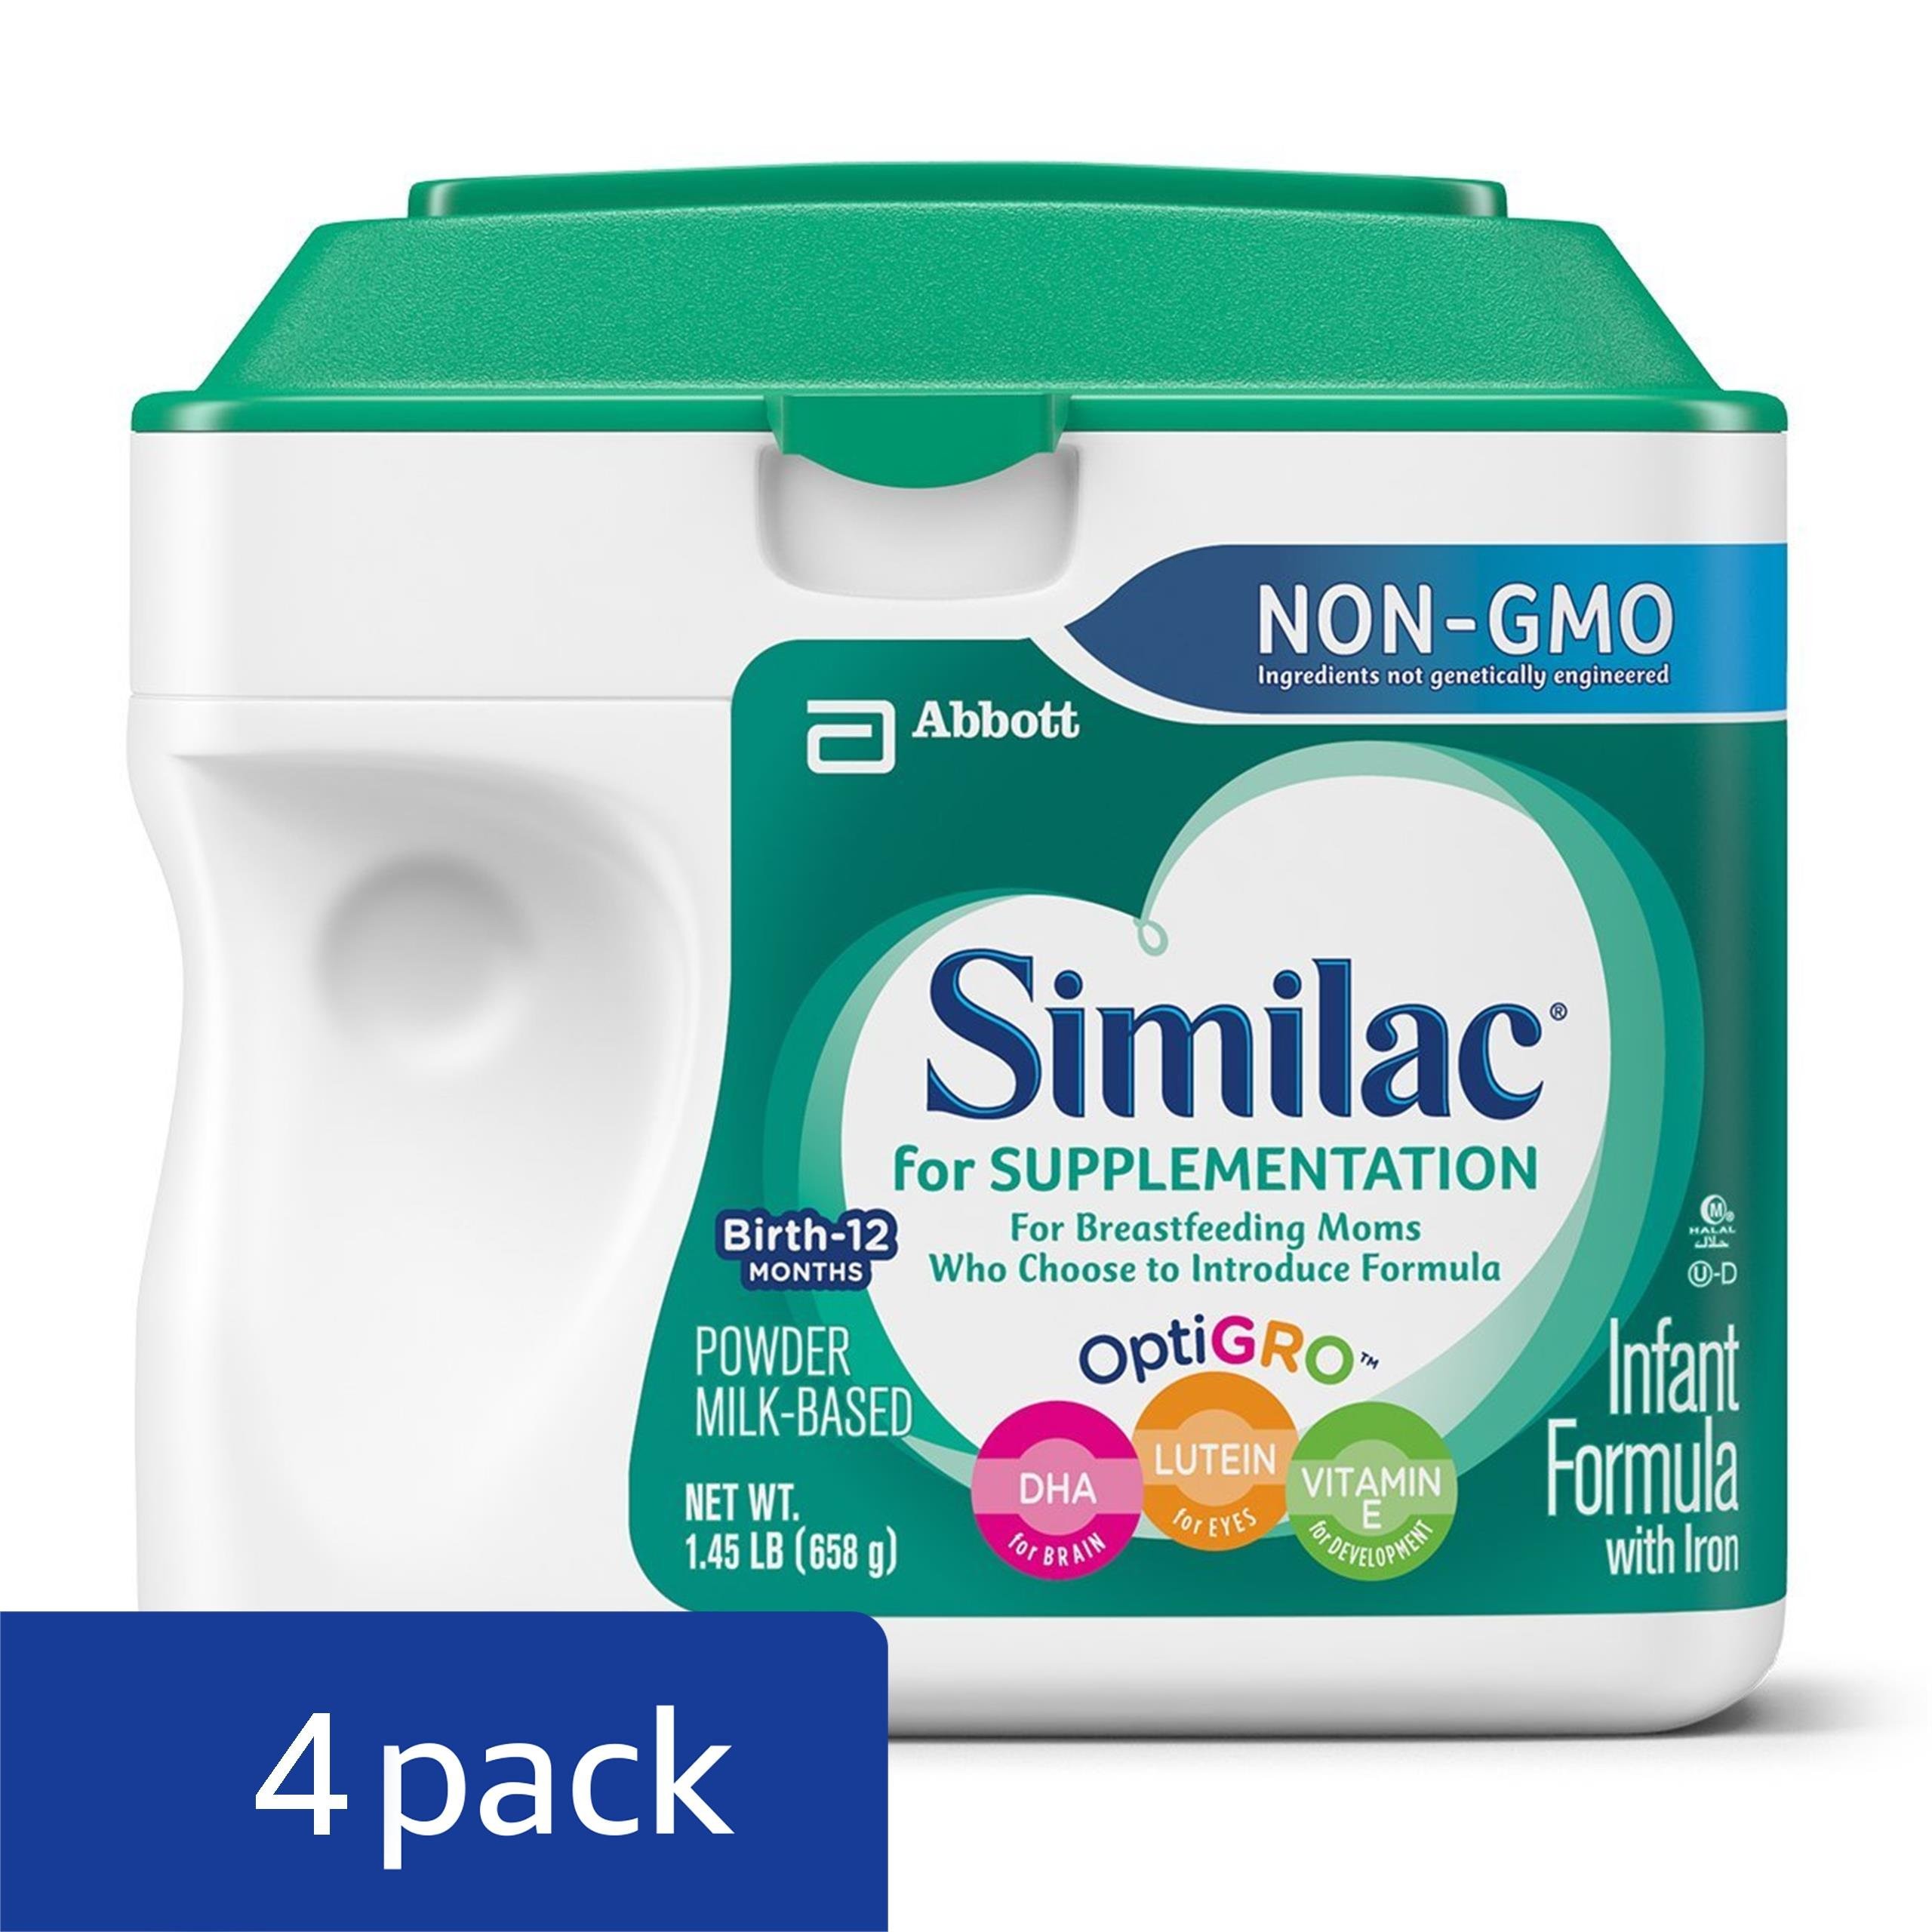 Similac For Supplementation Non-GMO Infant Formula with Iron, Powder, 23.2 Ounces (Pack of 4) by Similac (Image #3)